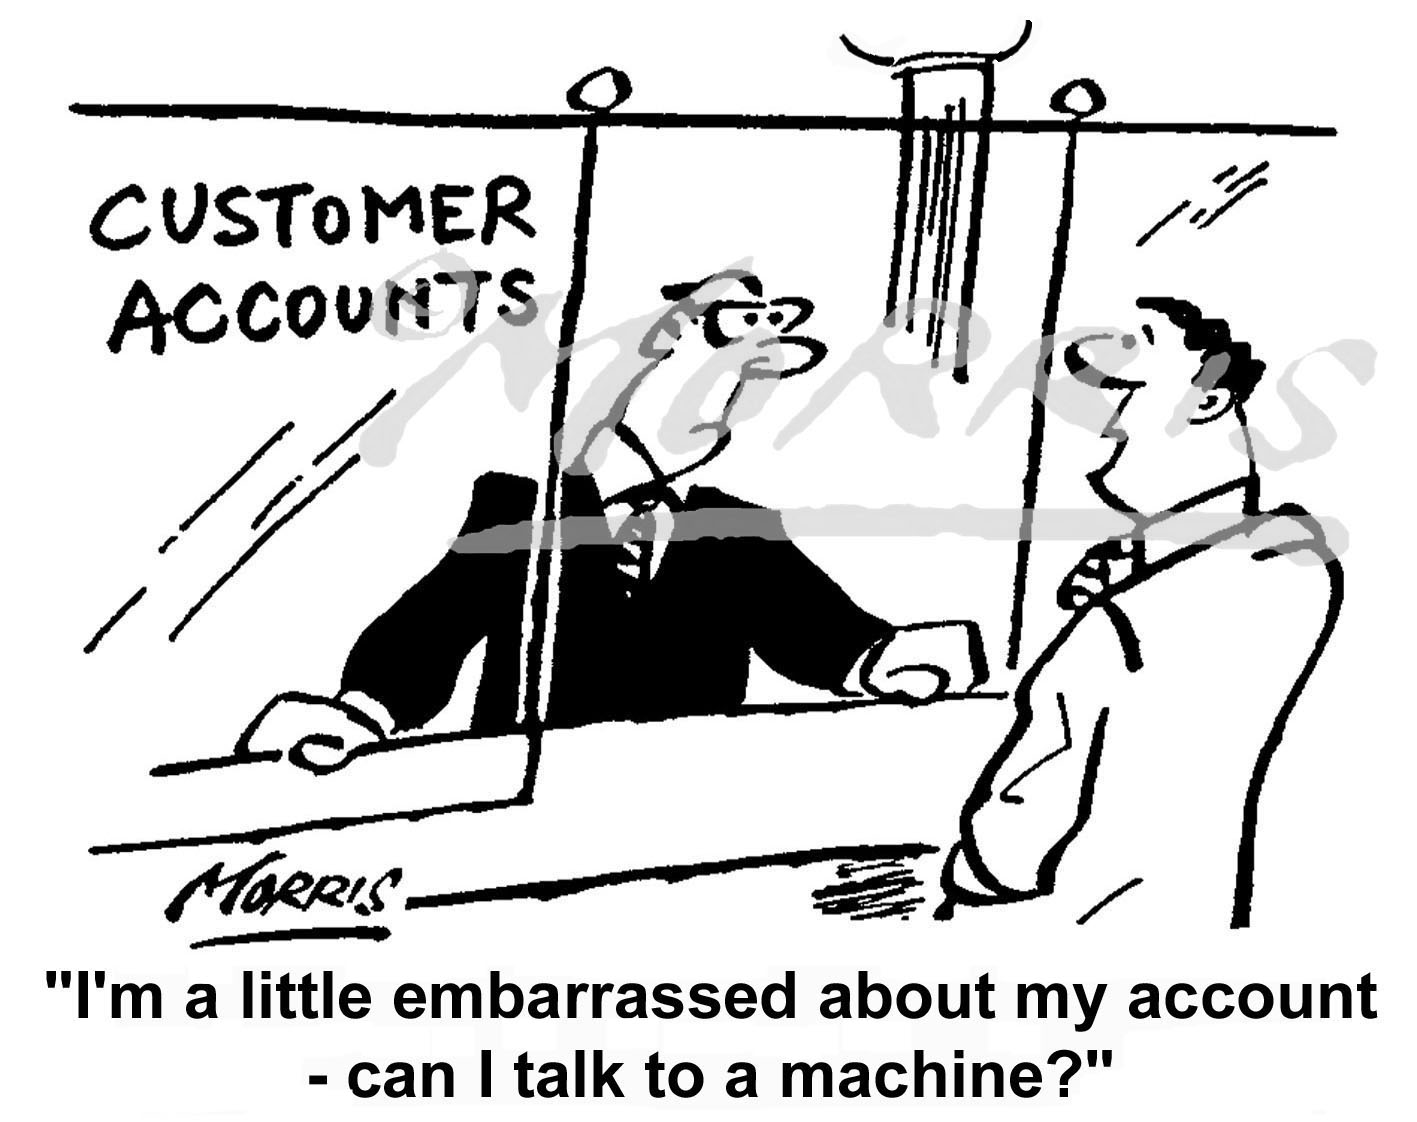 Personal bank account cartoon Ref: 0438bw